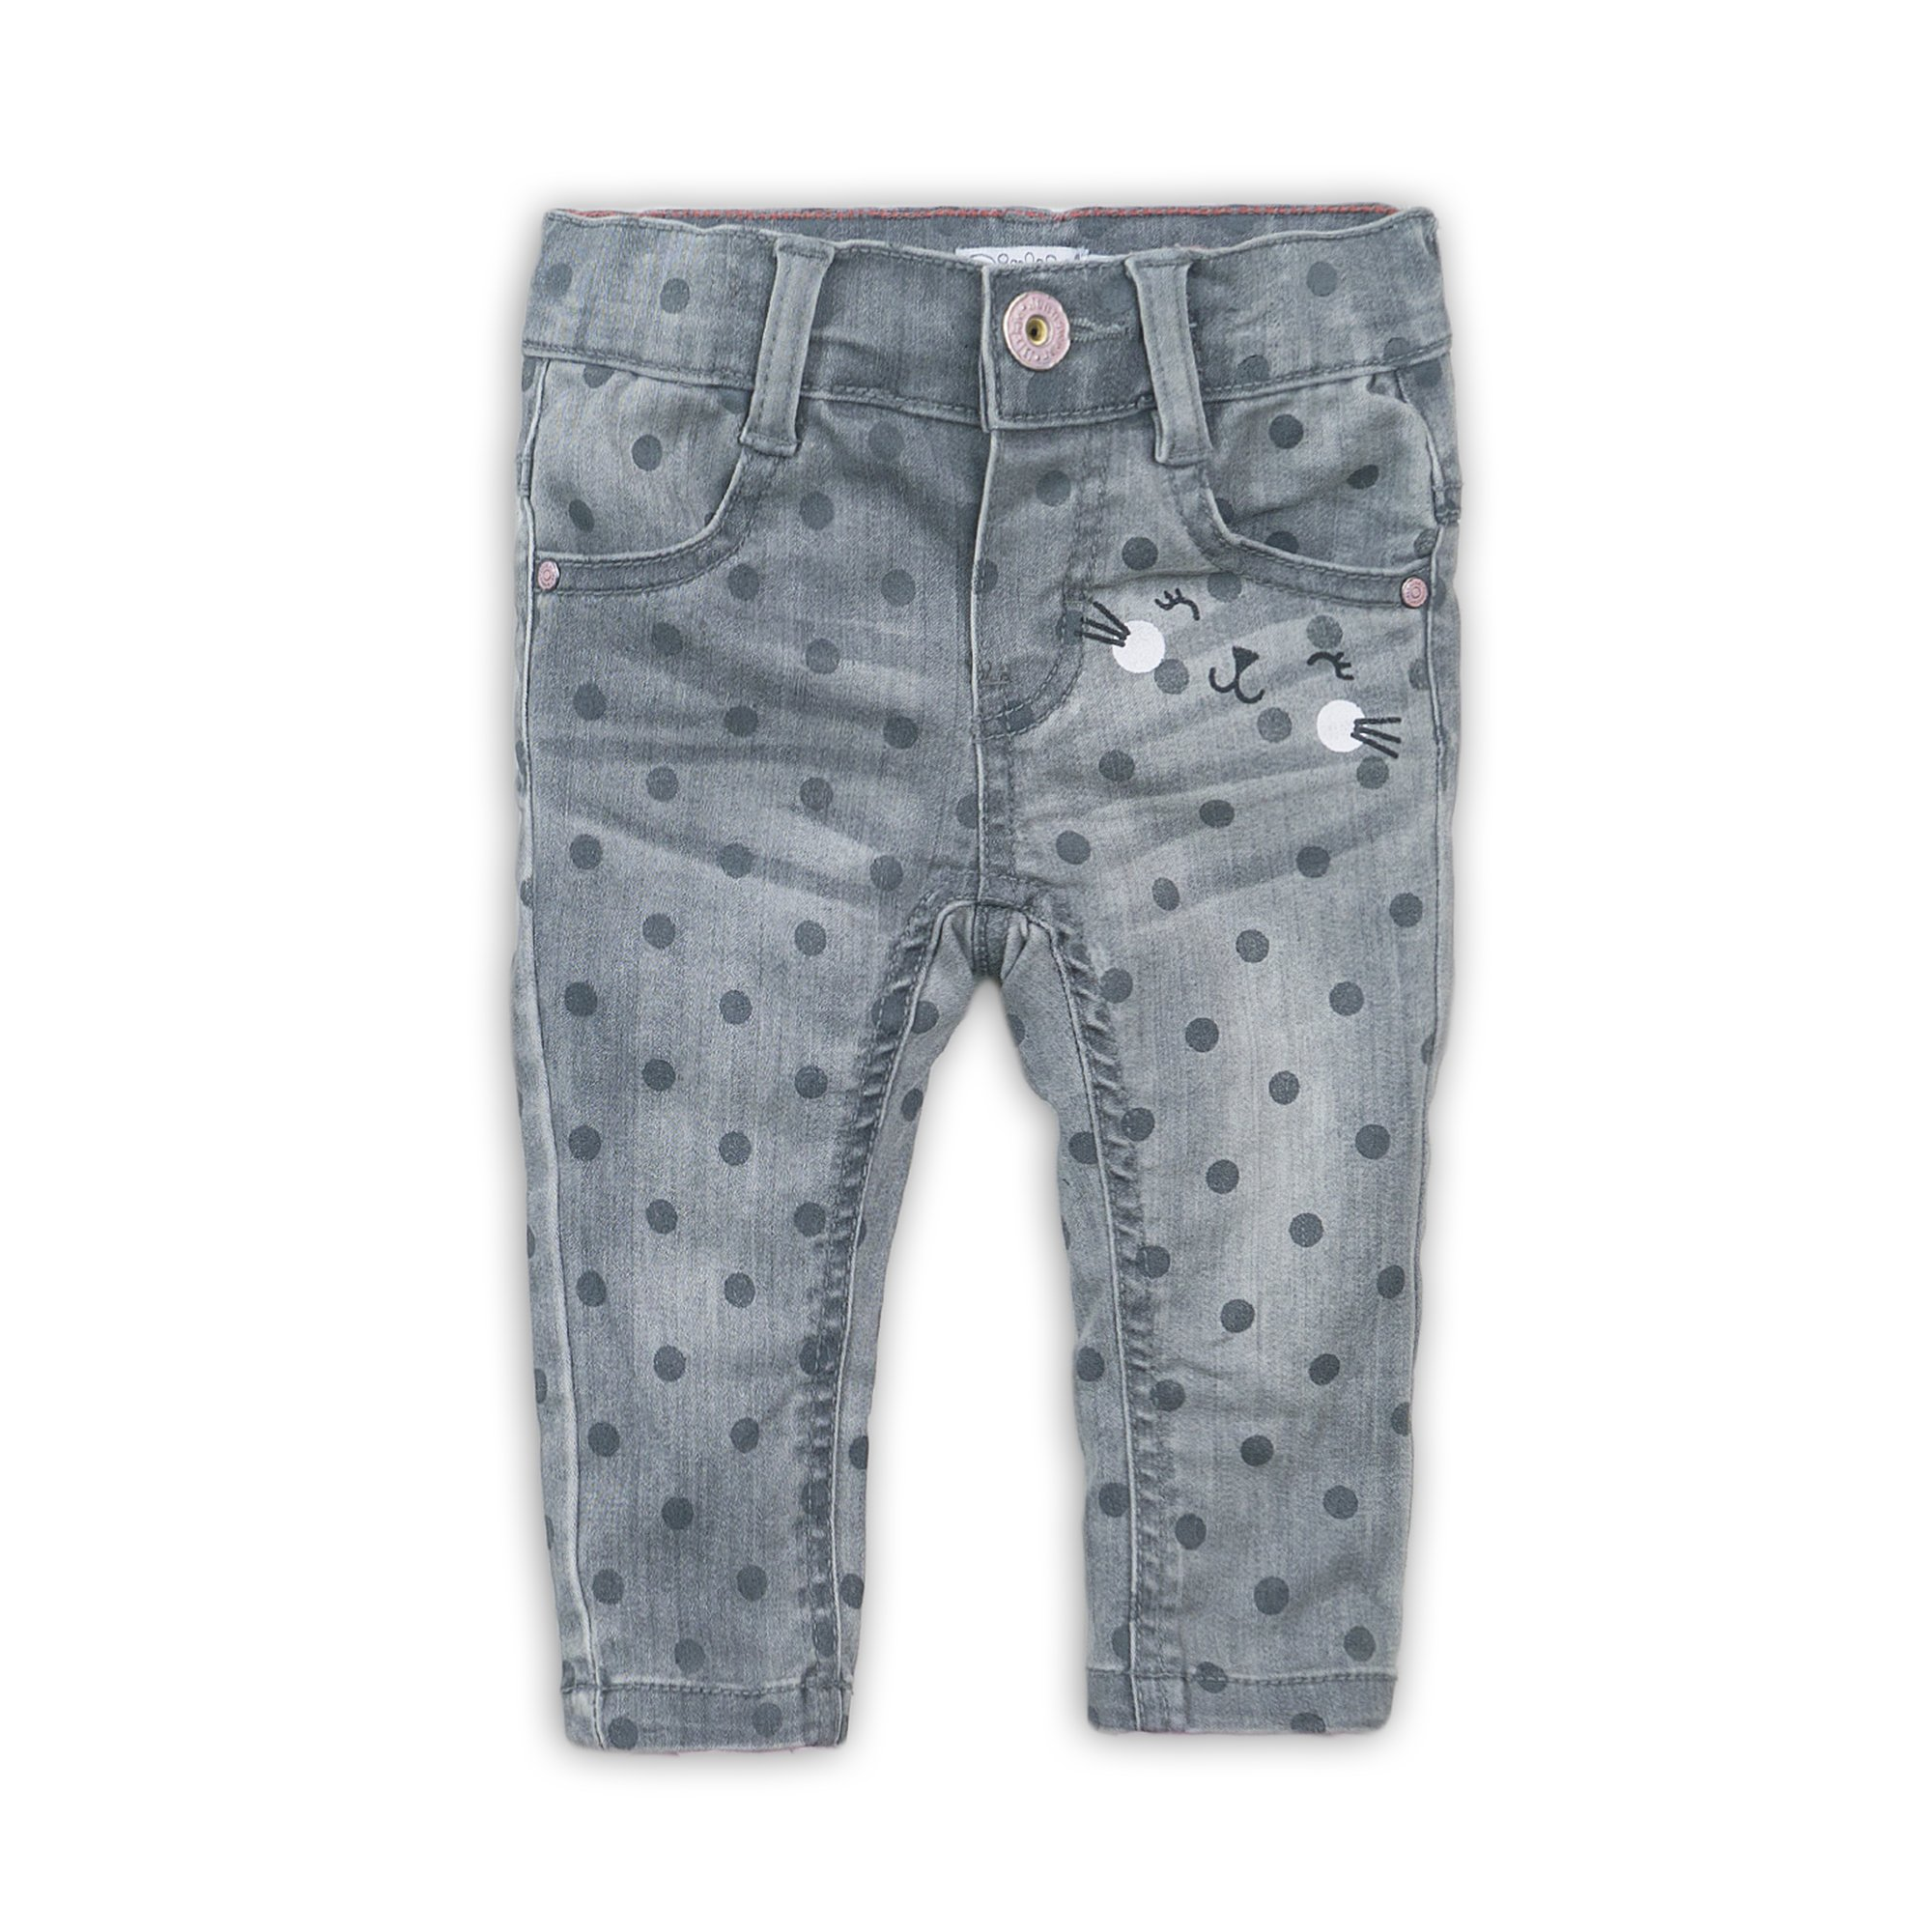 D36233-35 Baby jeans Grey jeans